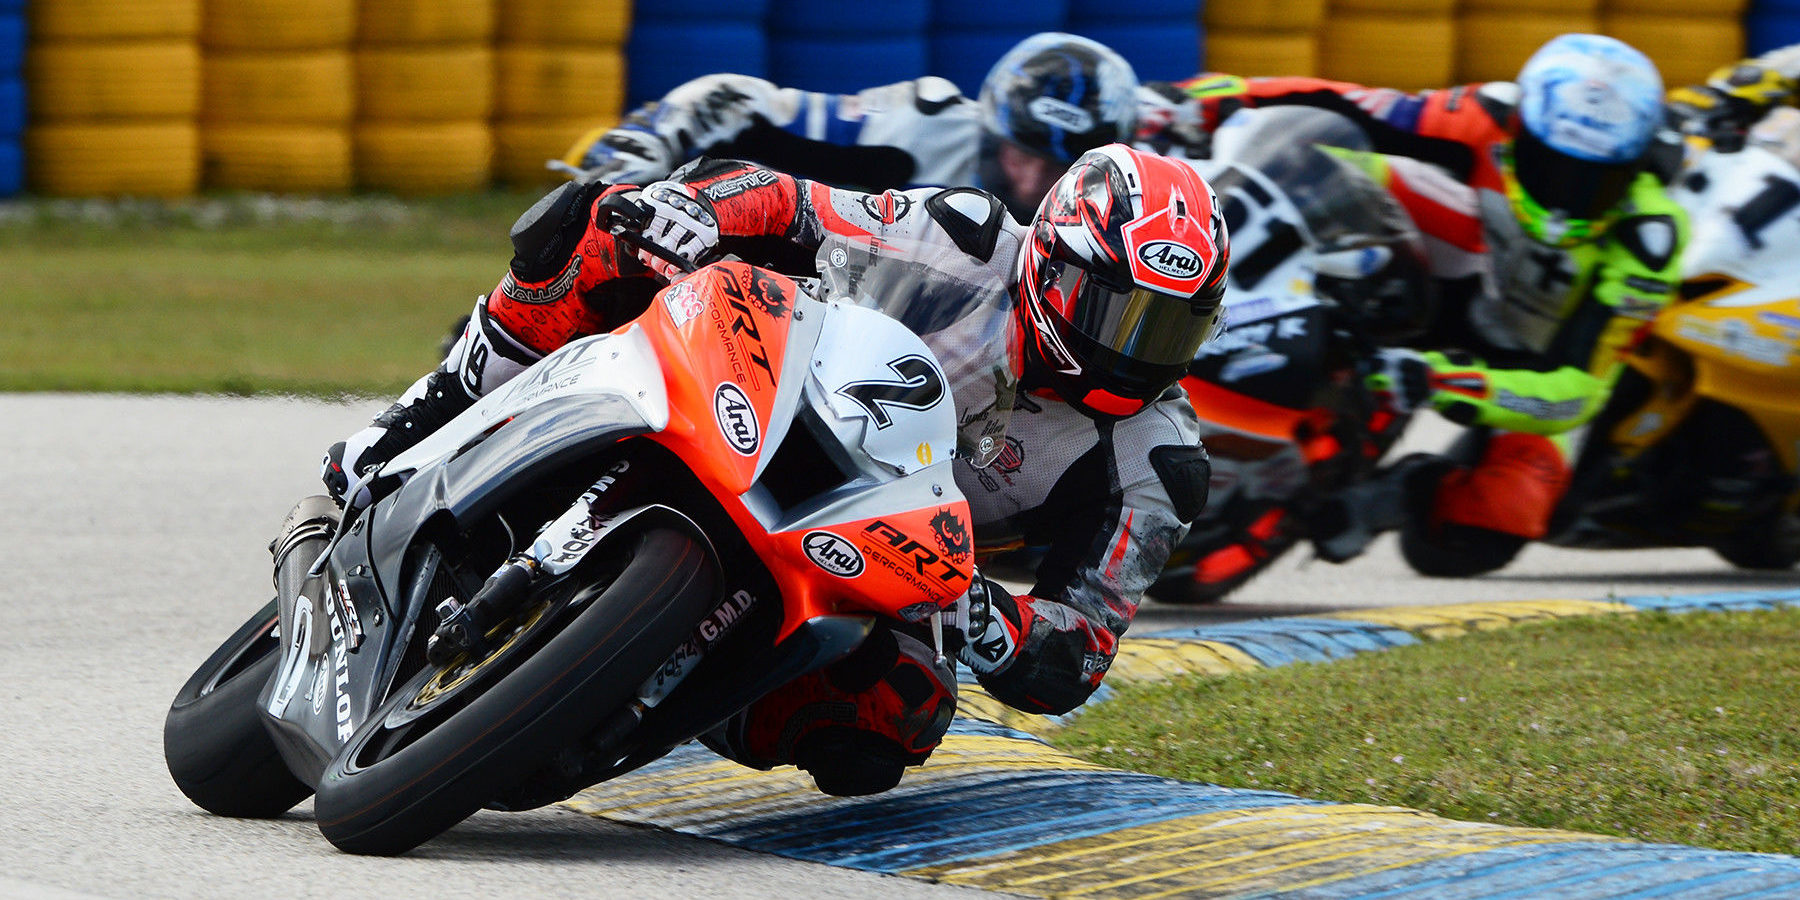 Action from a previous CCS race event at Homestead-Miami Speedway. Photo by Lisa Theobald, courtesy of ASRA/CCS.